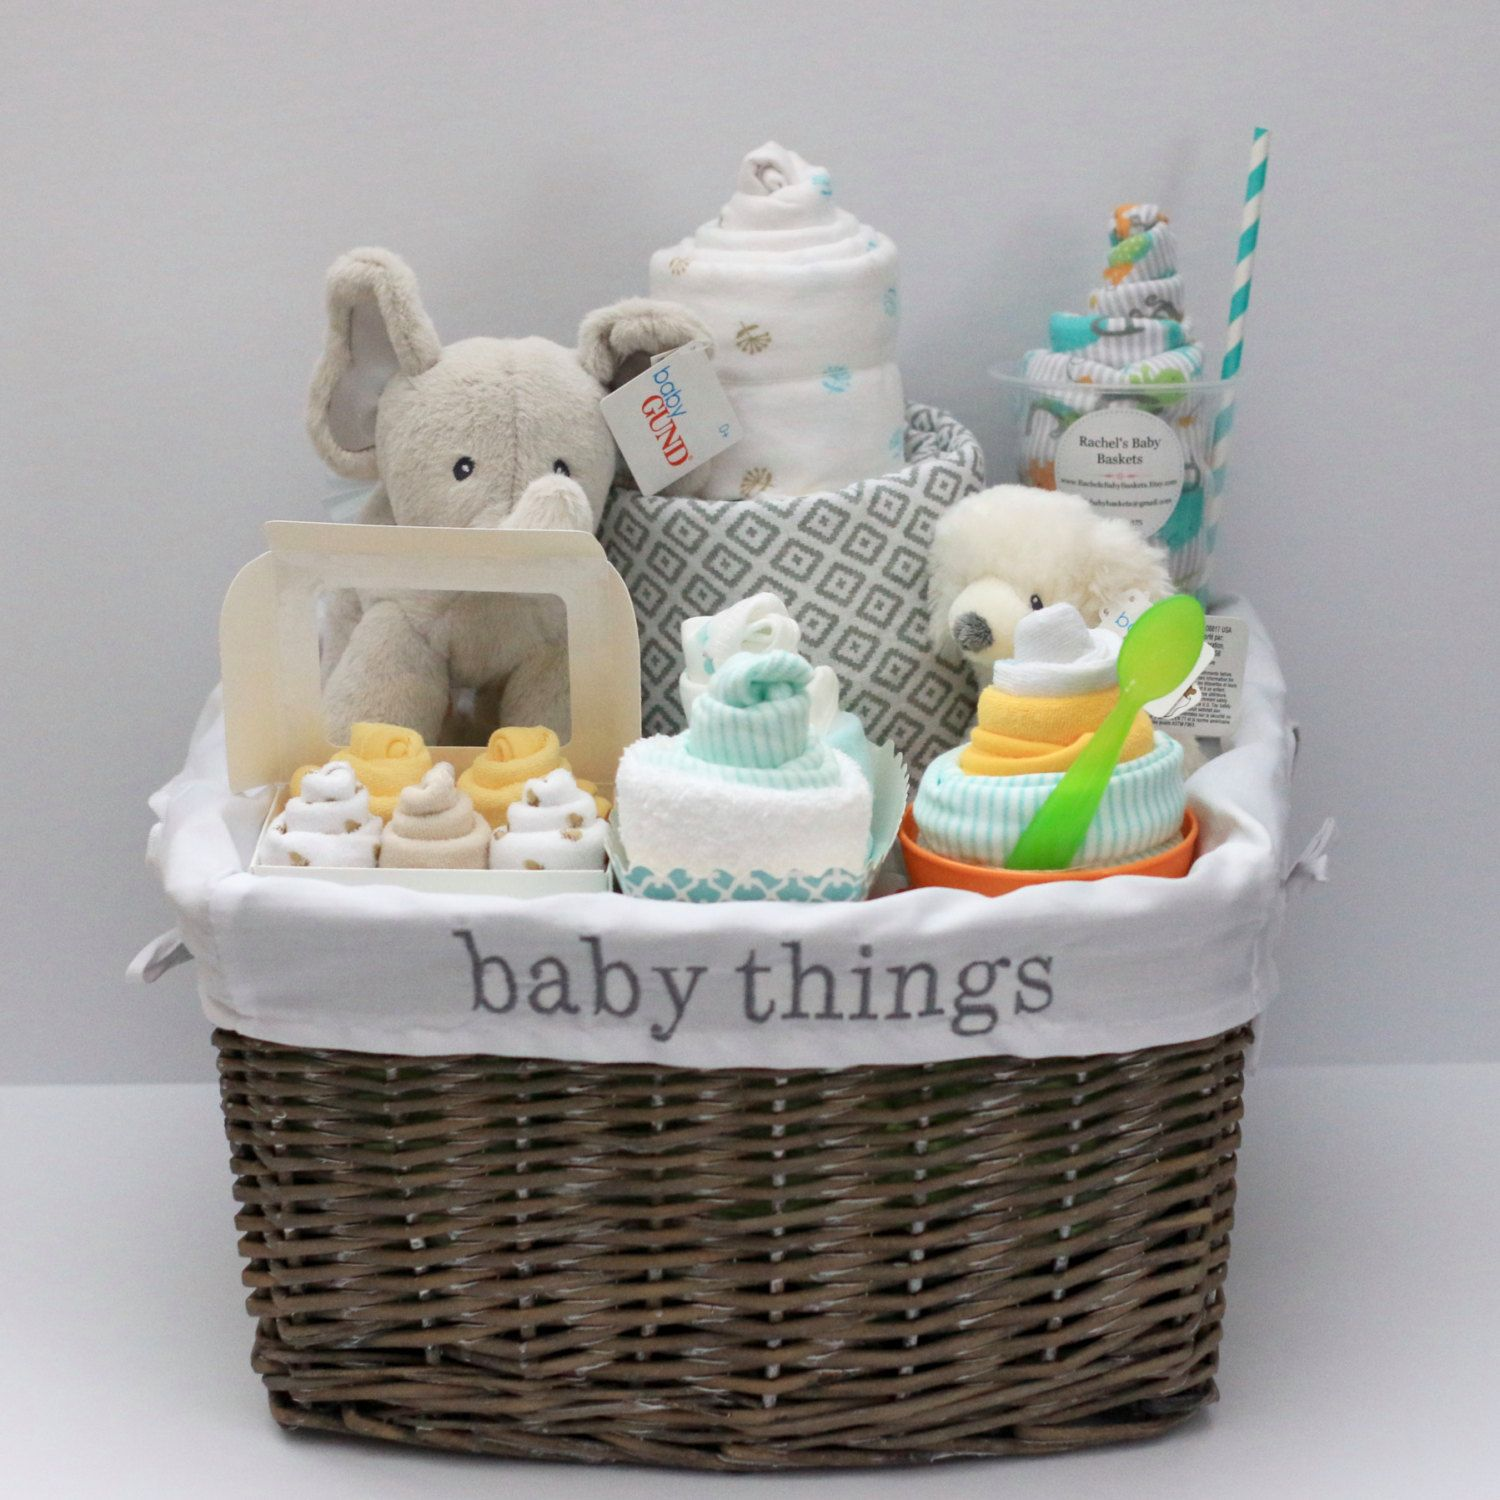 Gender neutral baby gift basket baby shower gift unique baby gift gender neutral baby gift basket baby shower gift unique baby gift by rsbabybaskets on baby gift basketsbaby hamper ideas diywrapping solutioingenieria Gallery